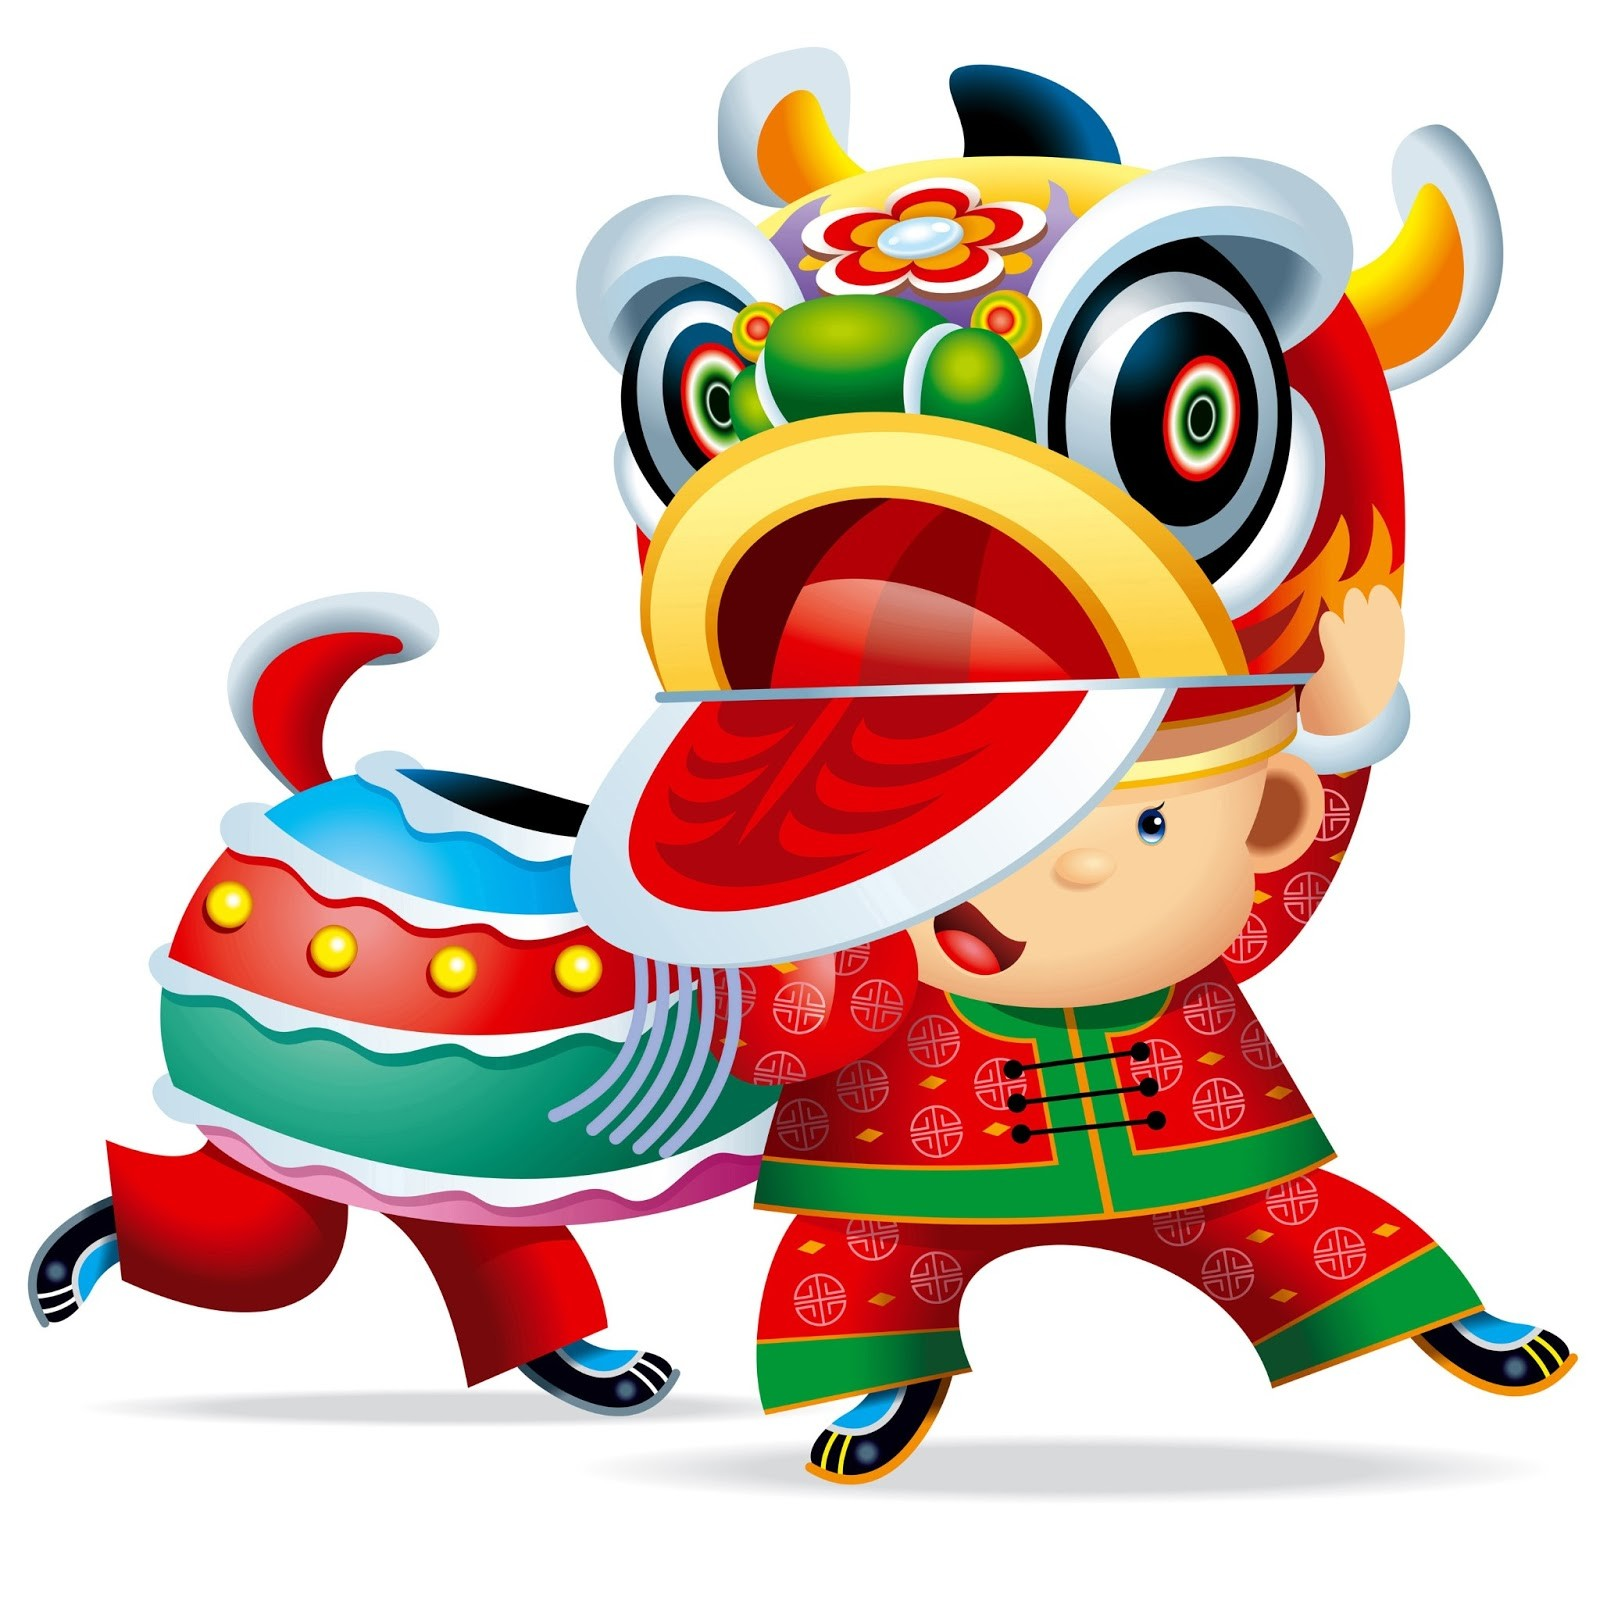 Asians clipart chinese dragon parade Lunar New Clipart  Resolution